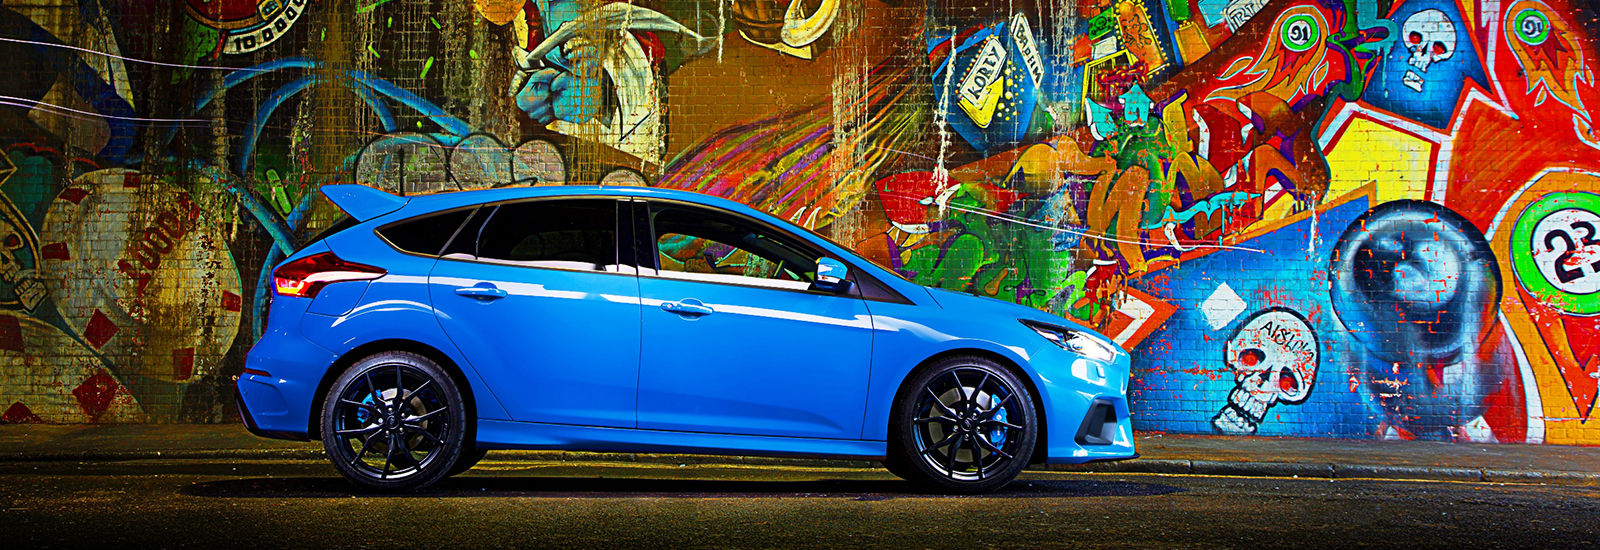 Ford Focus Rs Mountune What You Need To Know Carwow